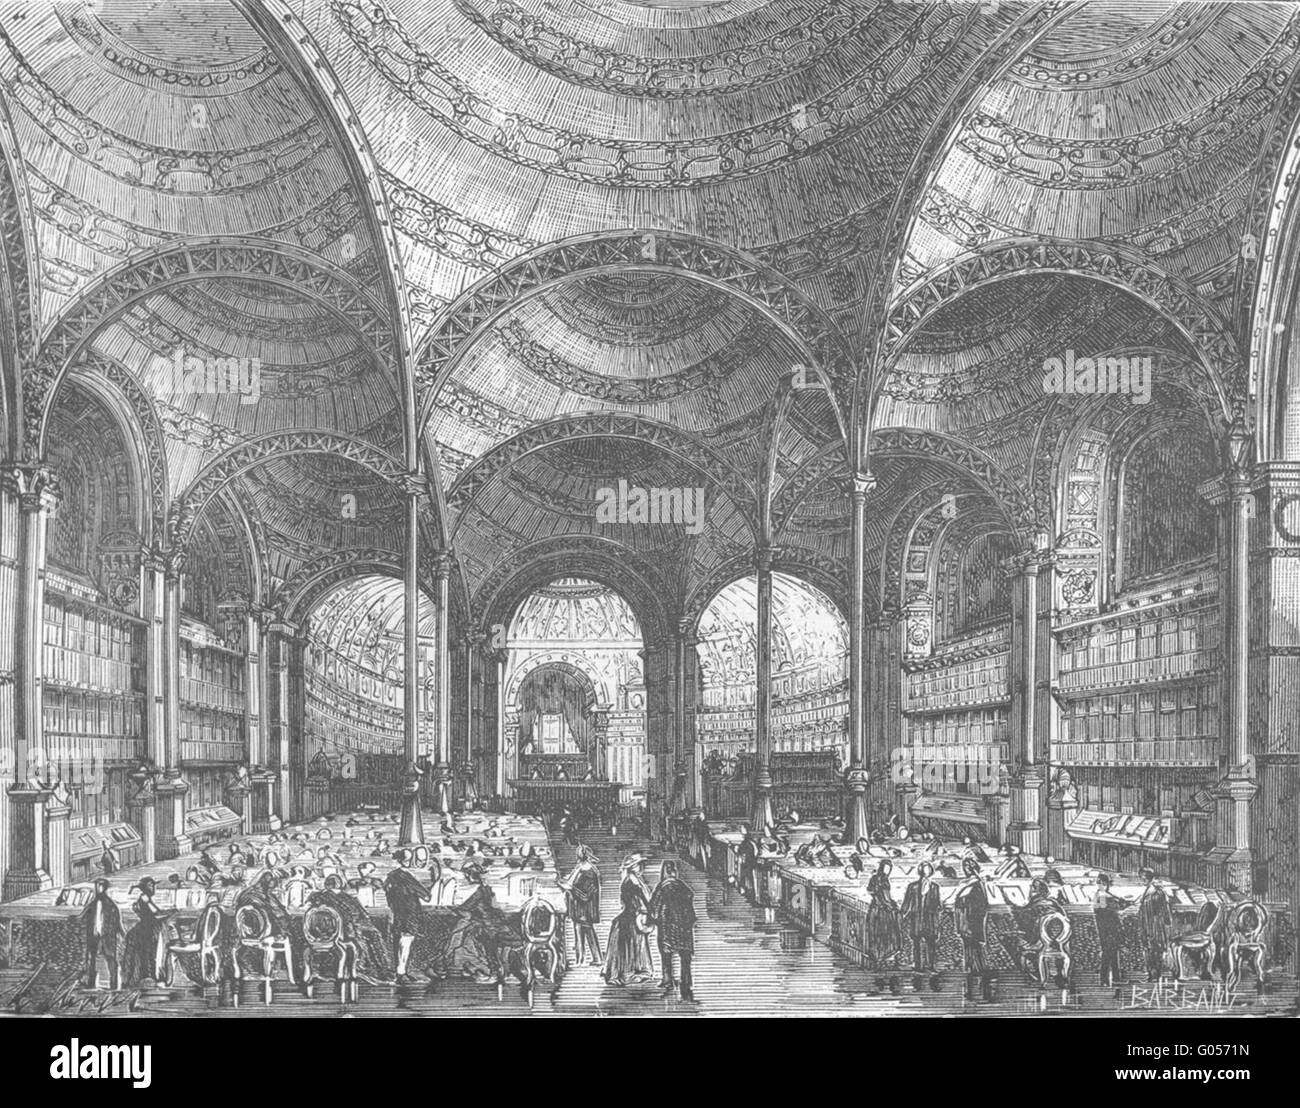 PARIS: Salle lecture Bibliotheque nationale , antique print 1881 - Stock Image